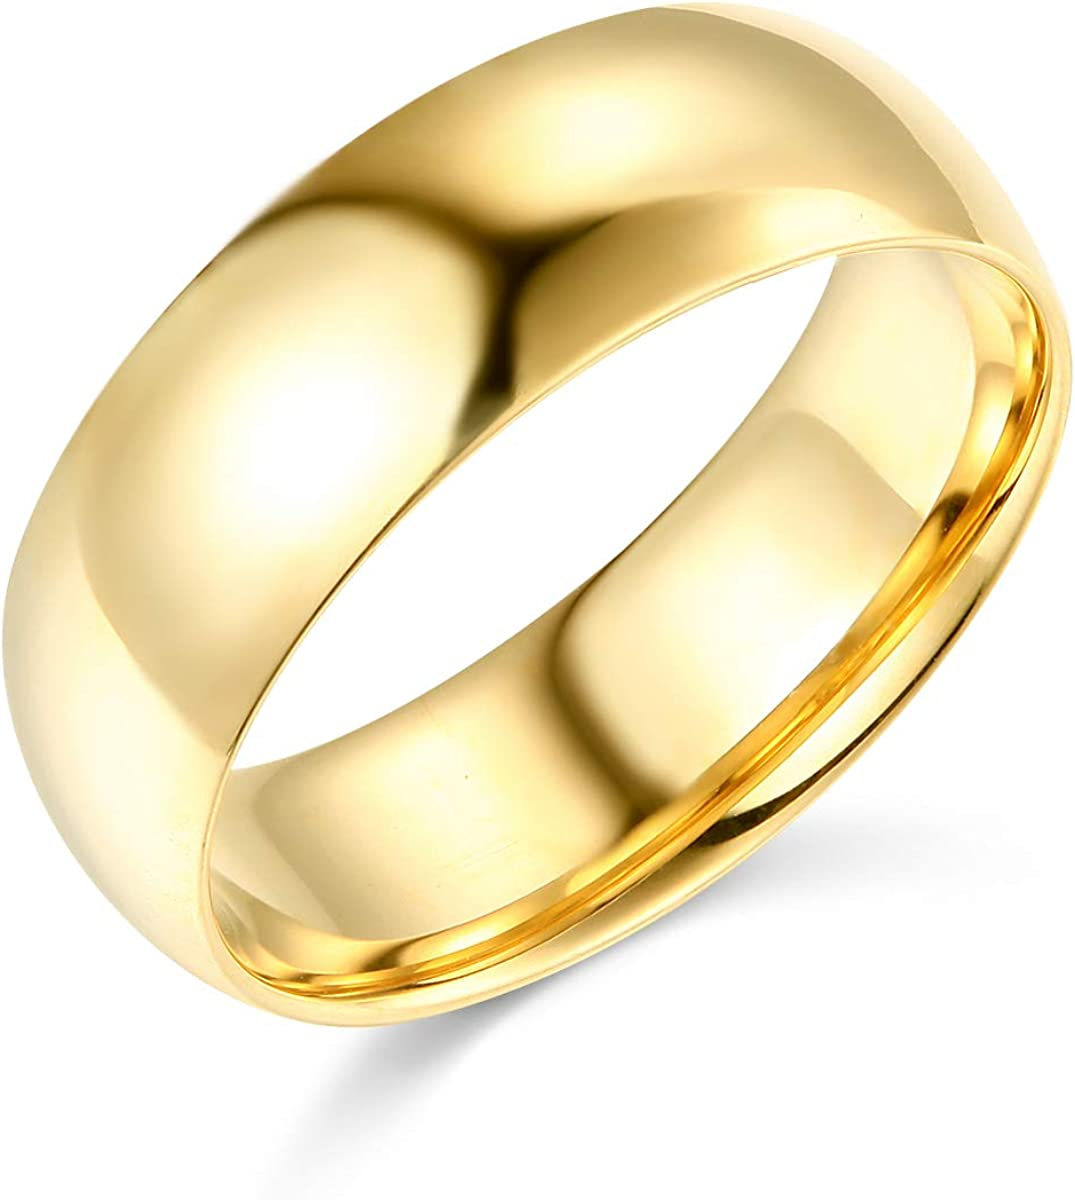 OR White Gold Solid 7mm CLASSIC FIT Traditional Wedding Band Ring Wellingsale 14k Yellow